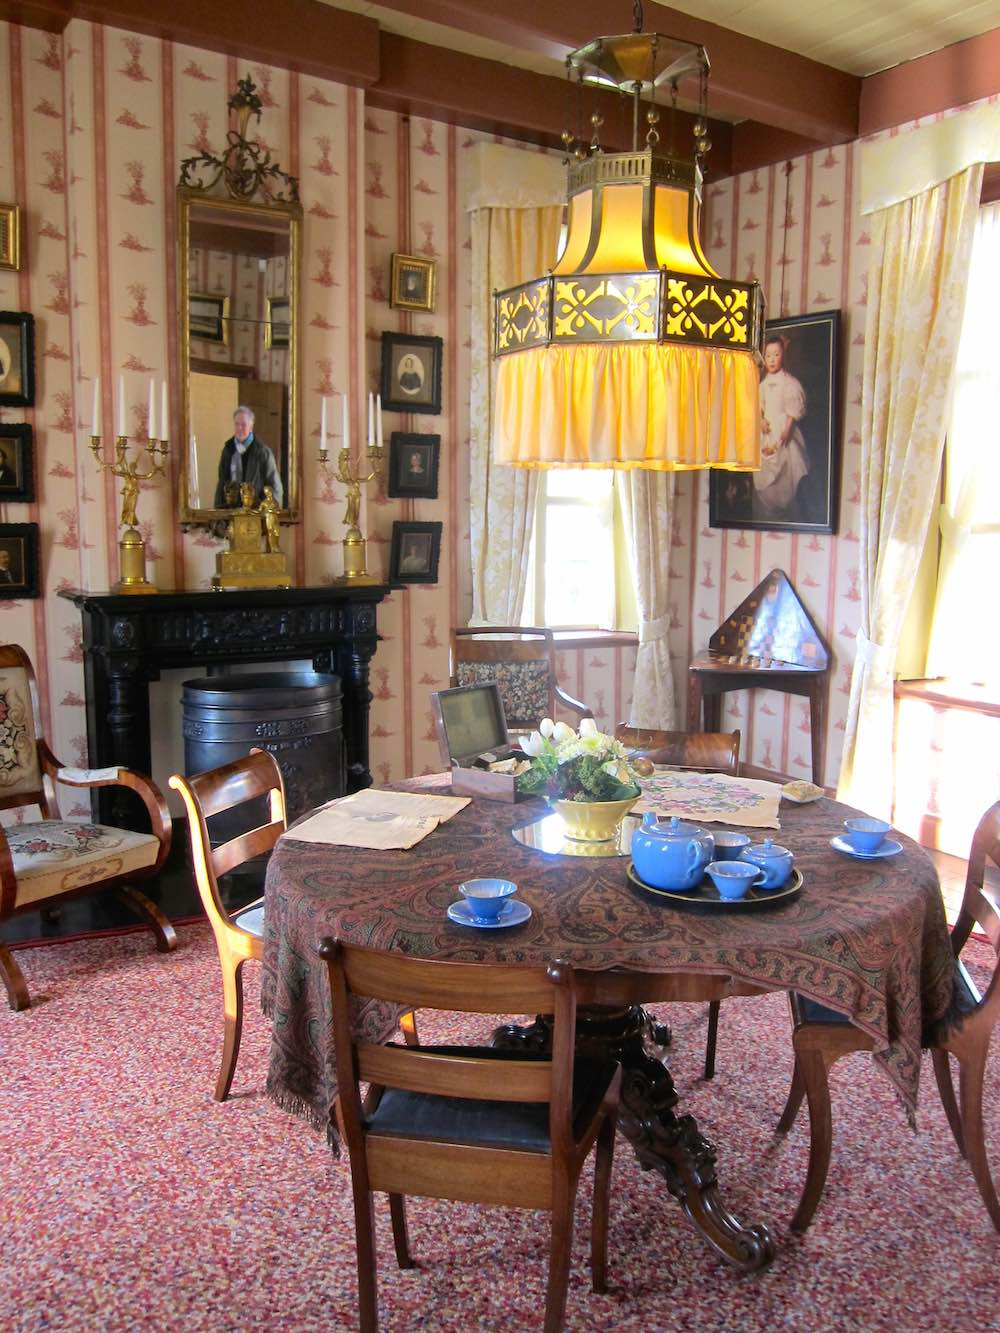 One of the rooms at the Fraeylemaborg |curlytraveller.com